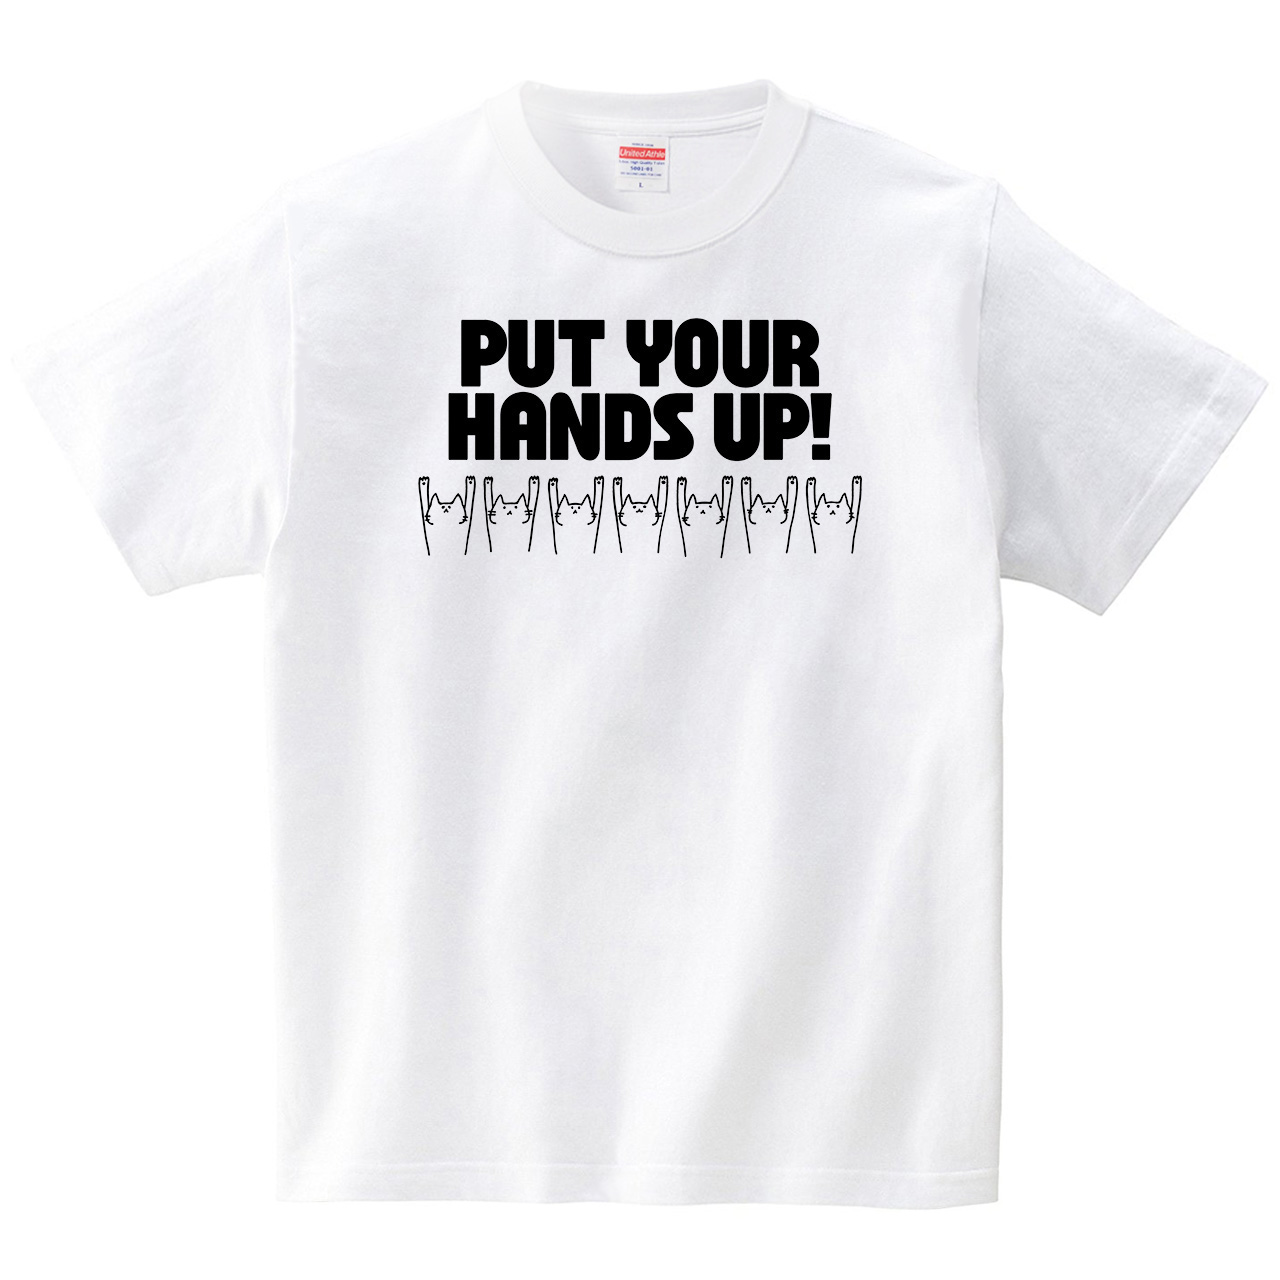 PUT YOUR HANDS UP!(Tシャツ・ホワイト)(オワリ)